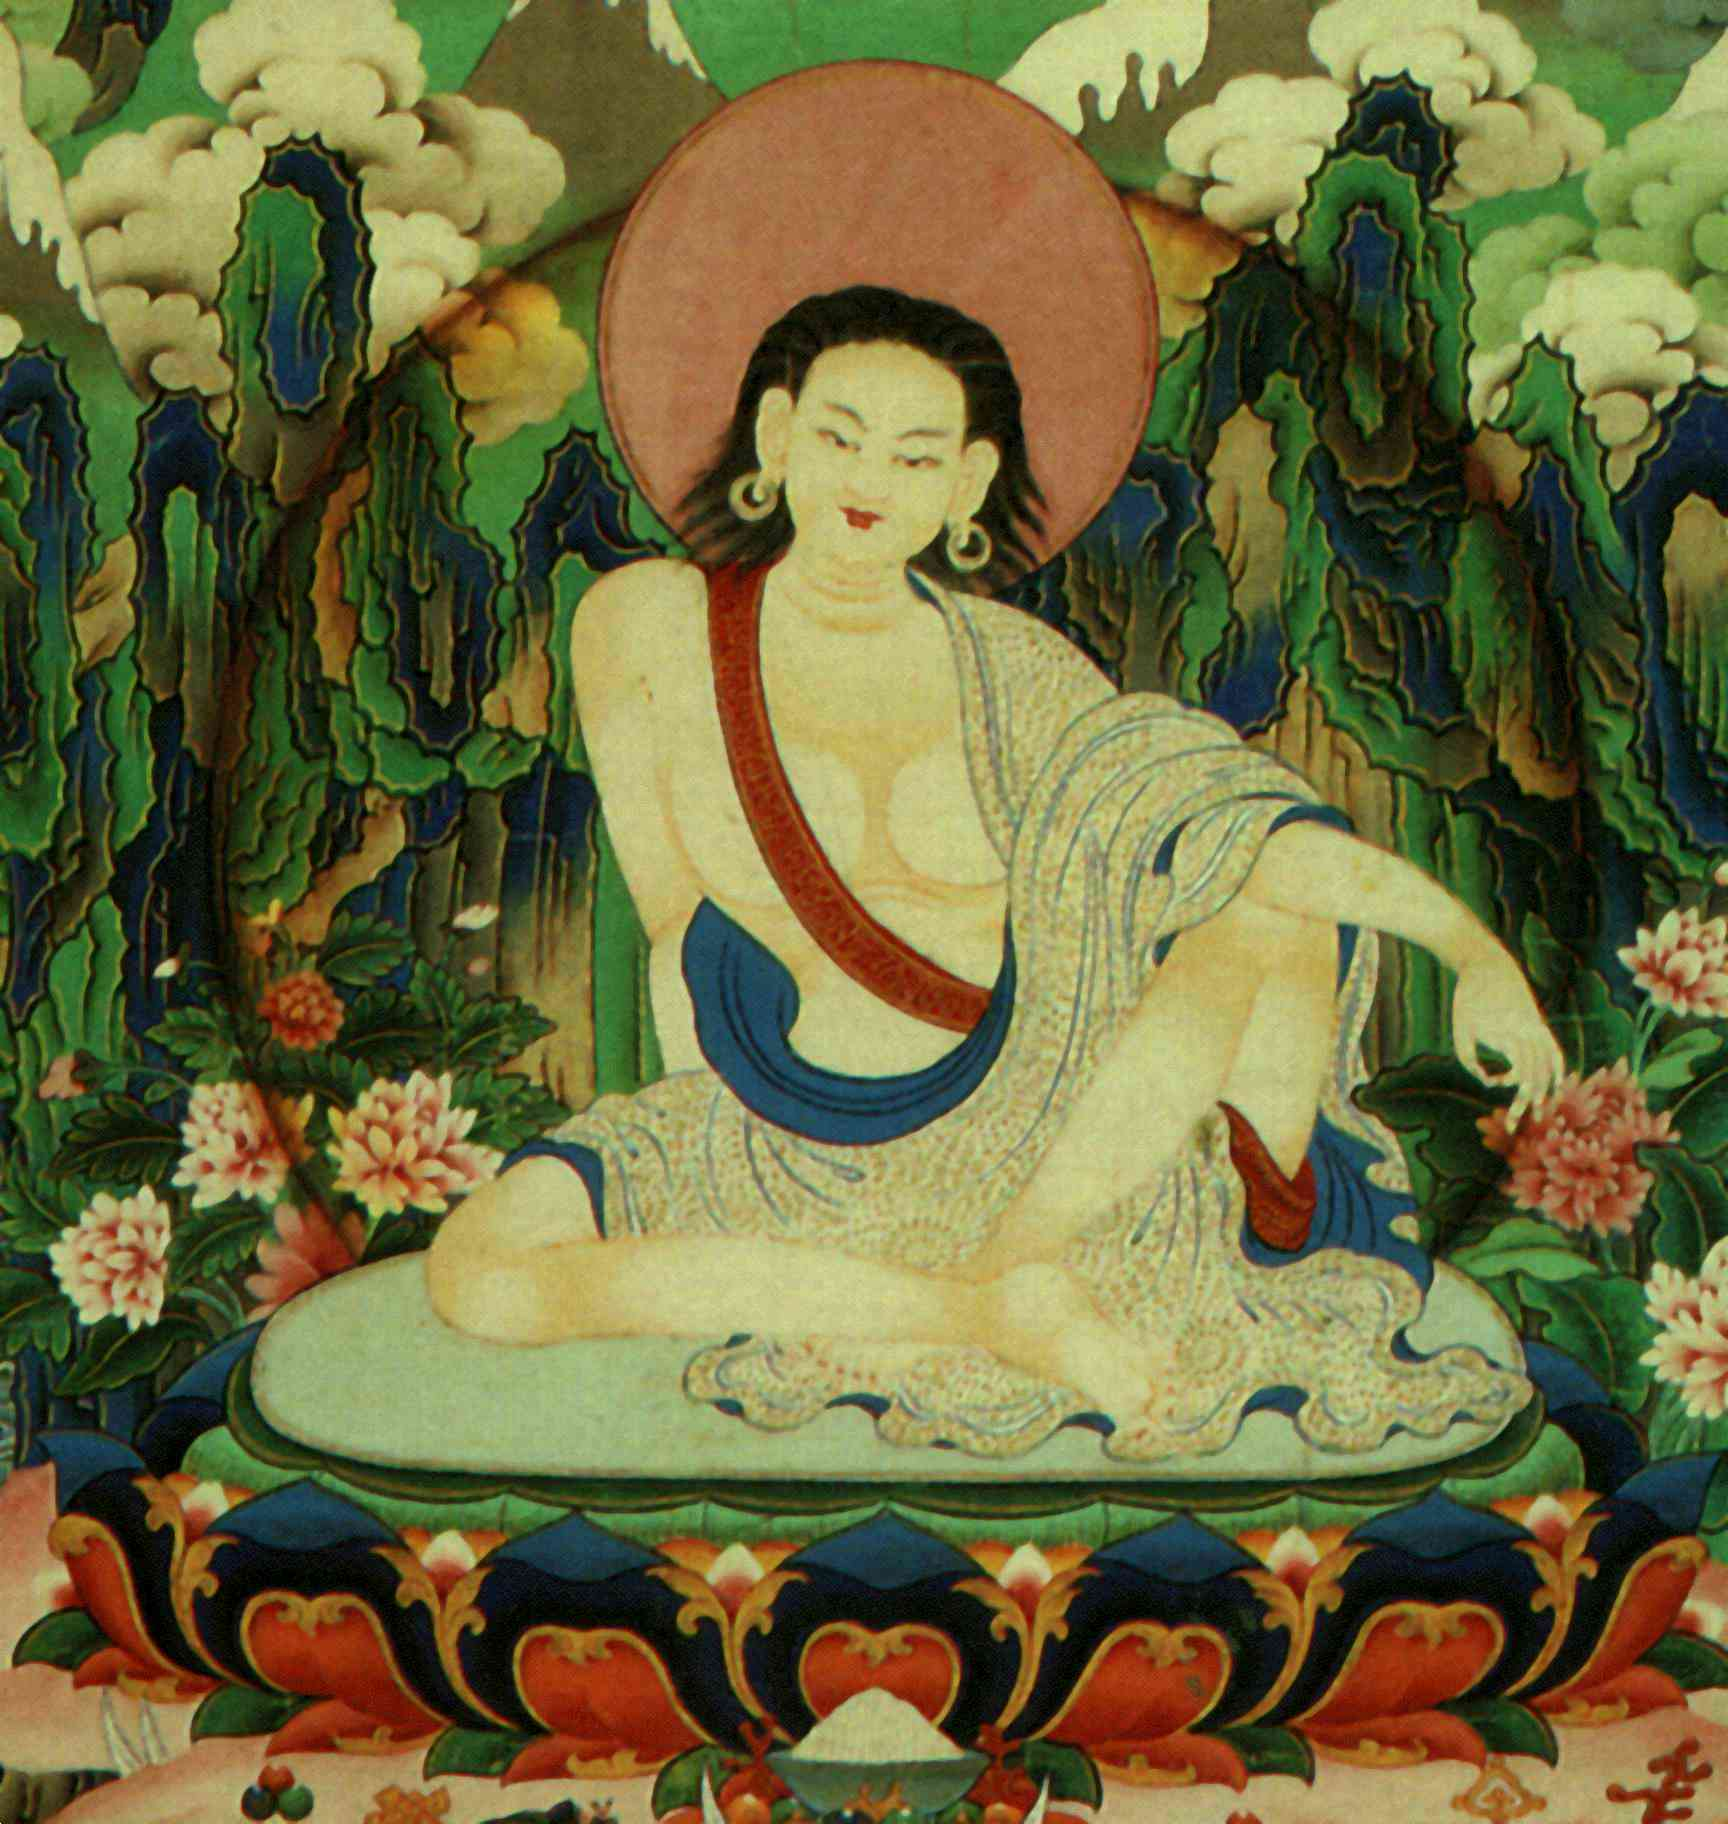 https://i0.wp.com/milarepa.edublogs.org/files/2008/10/milarepa.jpg